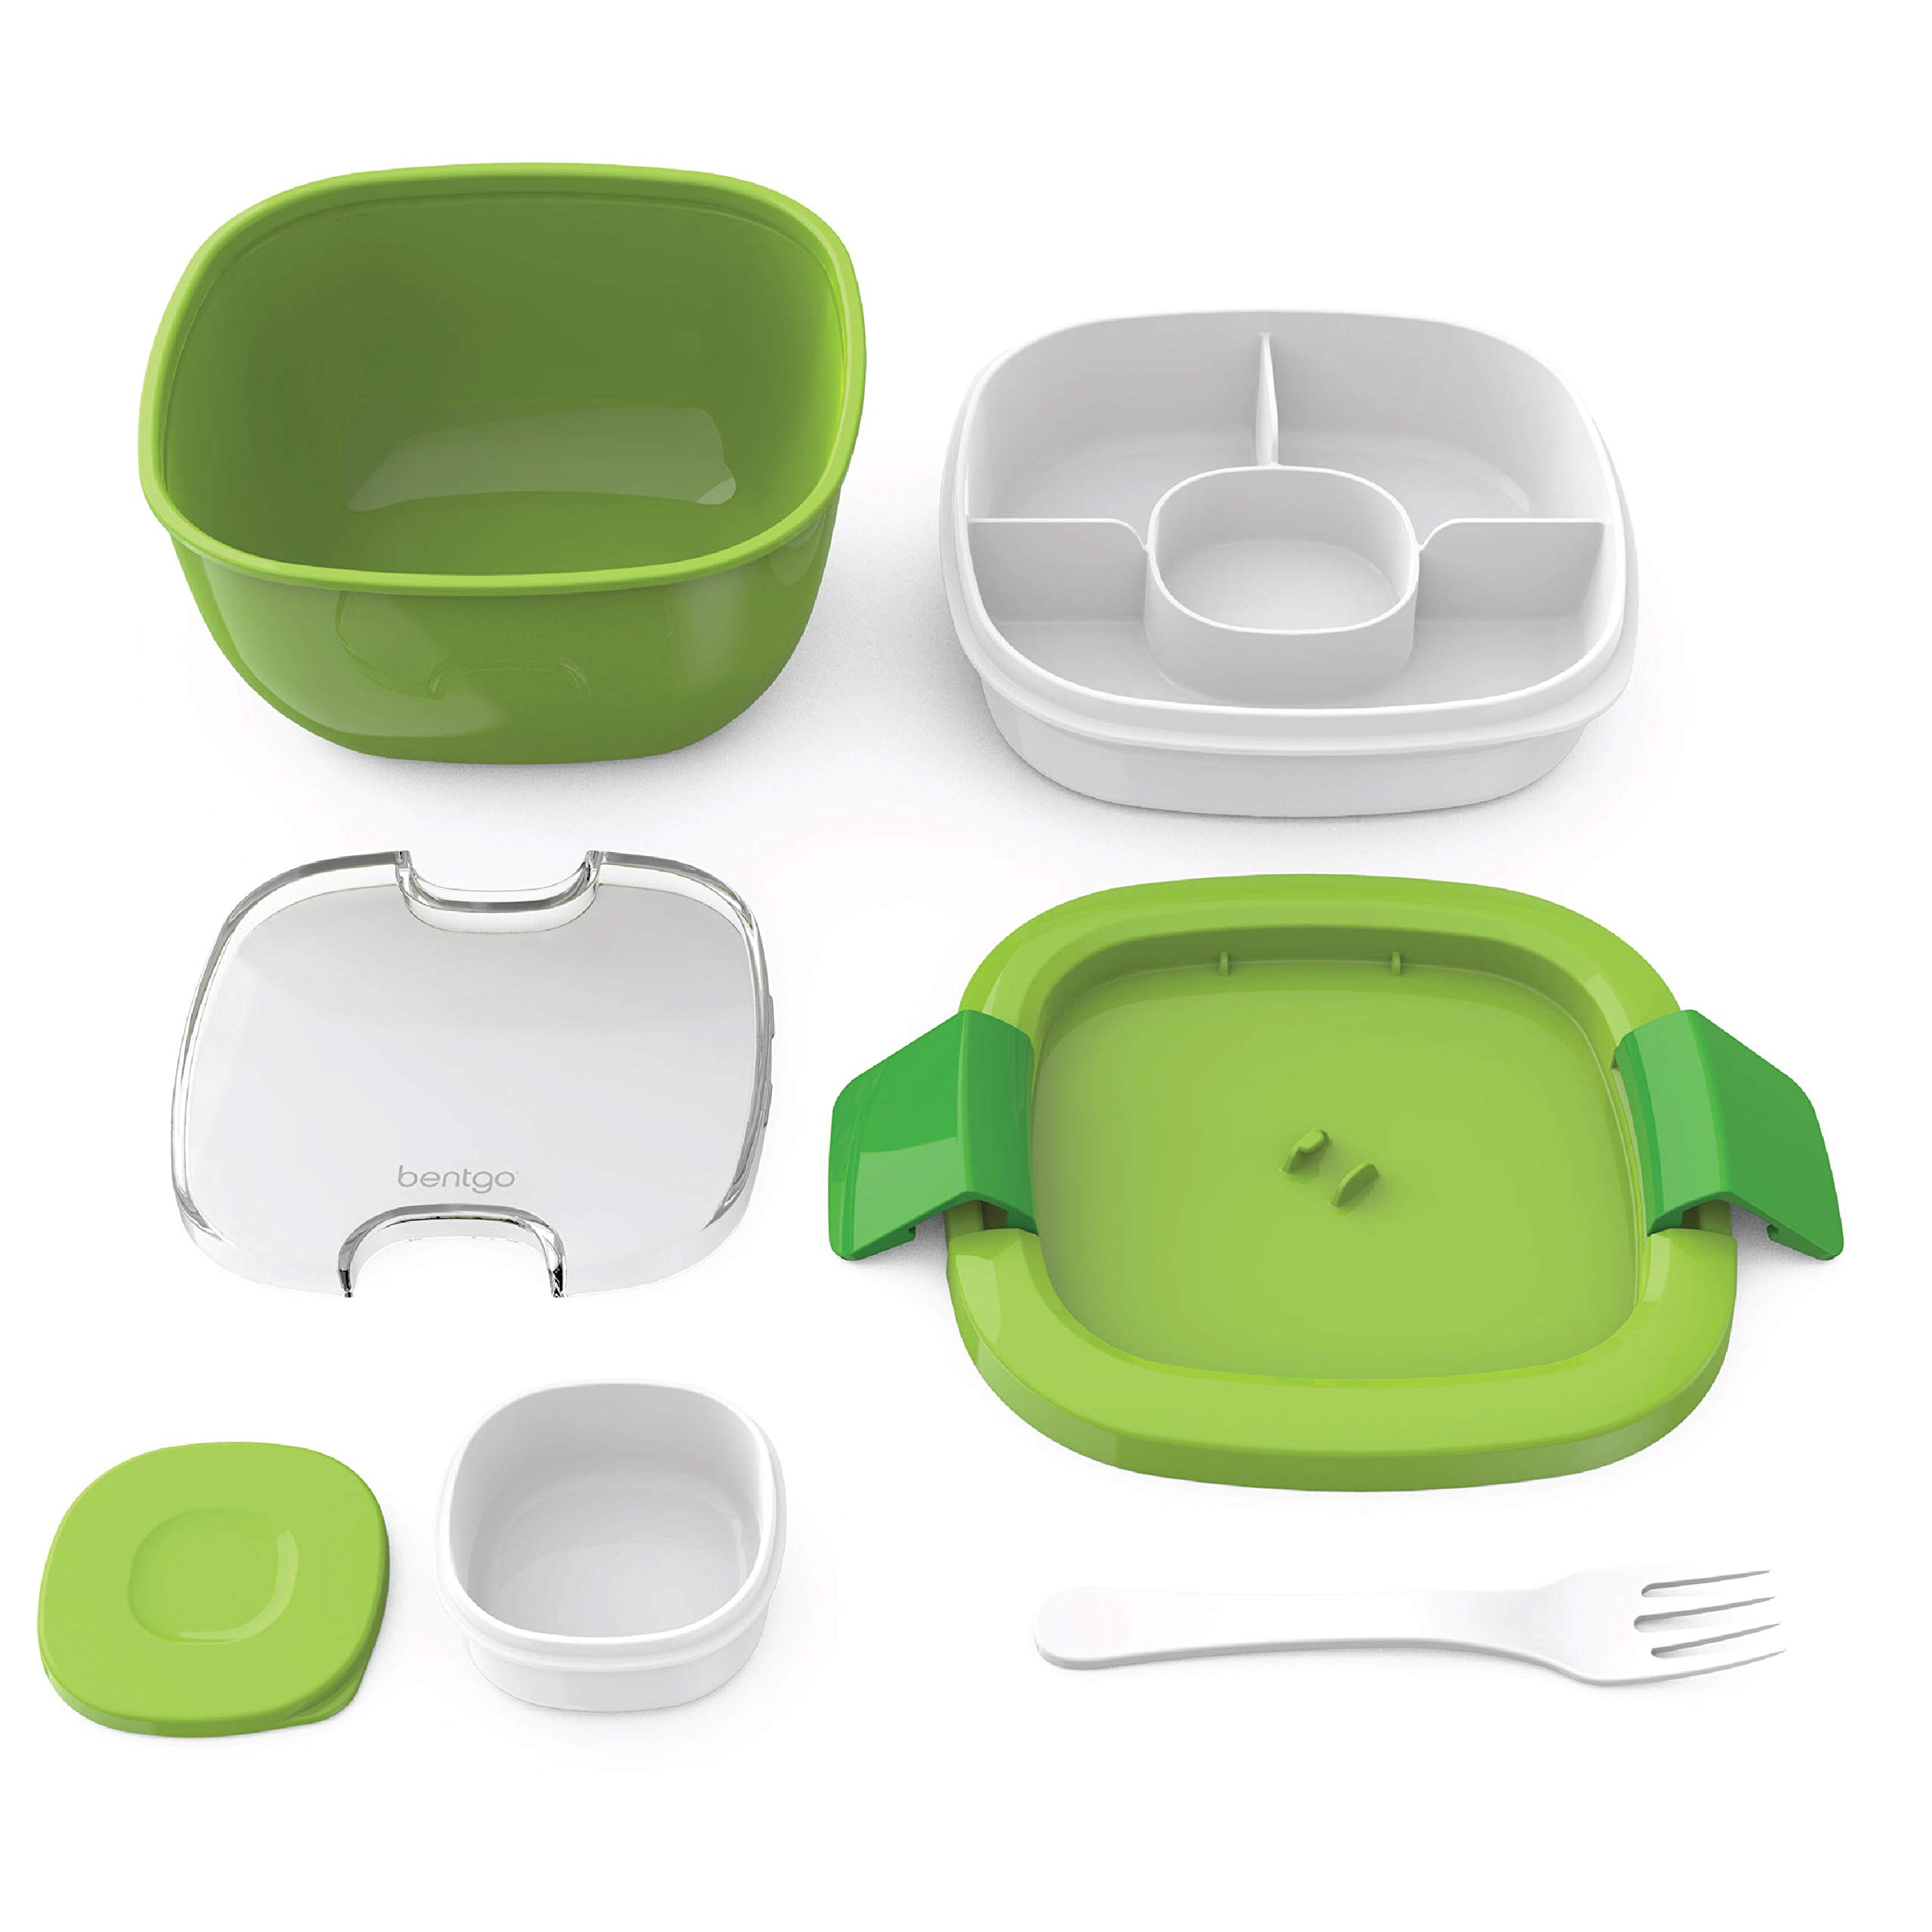 Bentgo Salad (Green) BPA-Free Lunch Container with Large 54-oz Salad Bowl, 3-Compartment Bento-Style Tray for Salad Toppings and Snacks, 3-oz Sauce Container for Dressings, and Built-In Reusable Fork by Bentgo (Image #5)